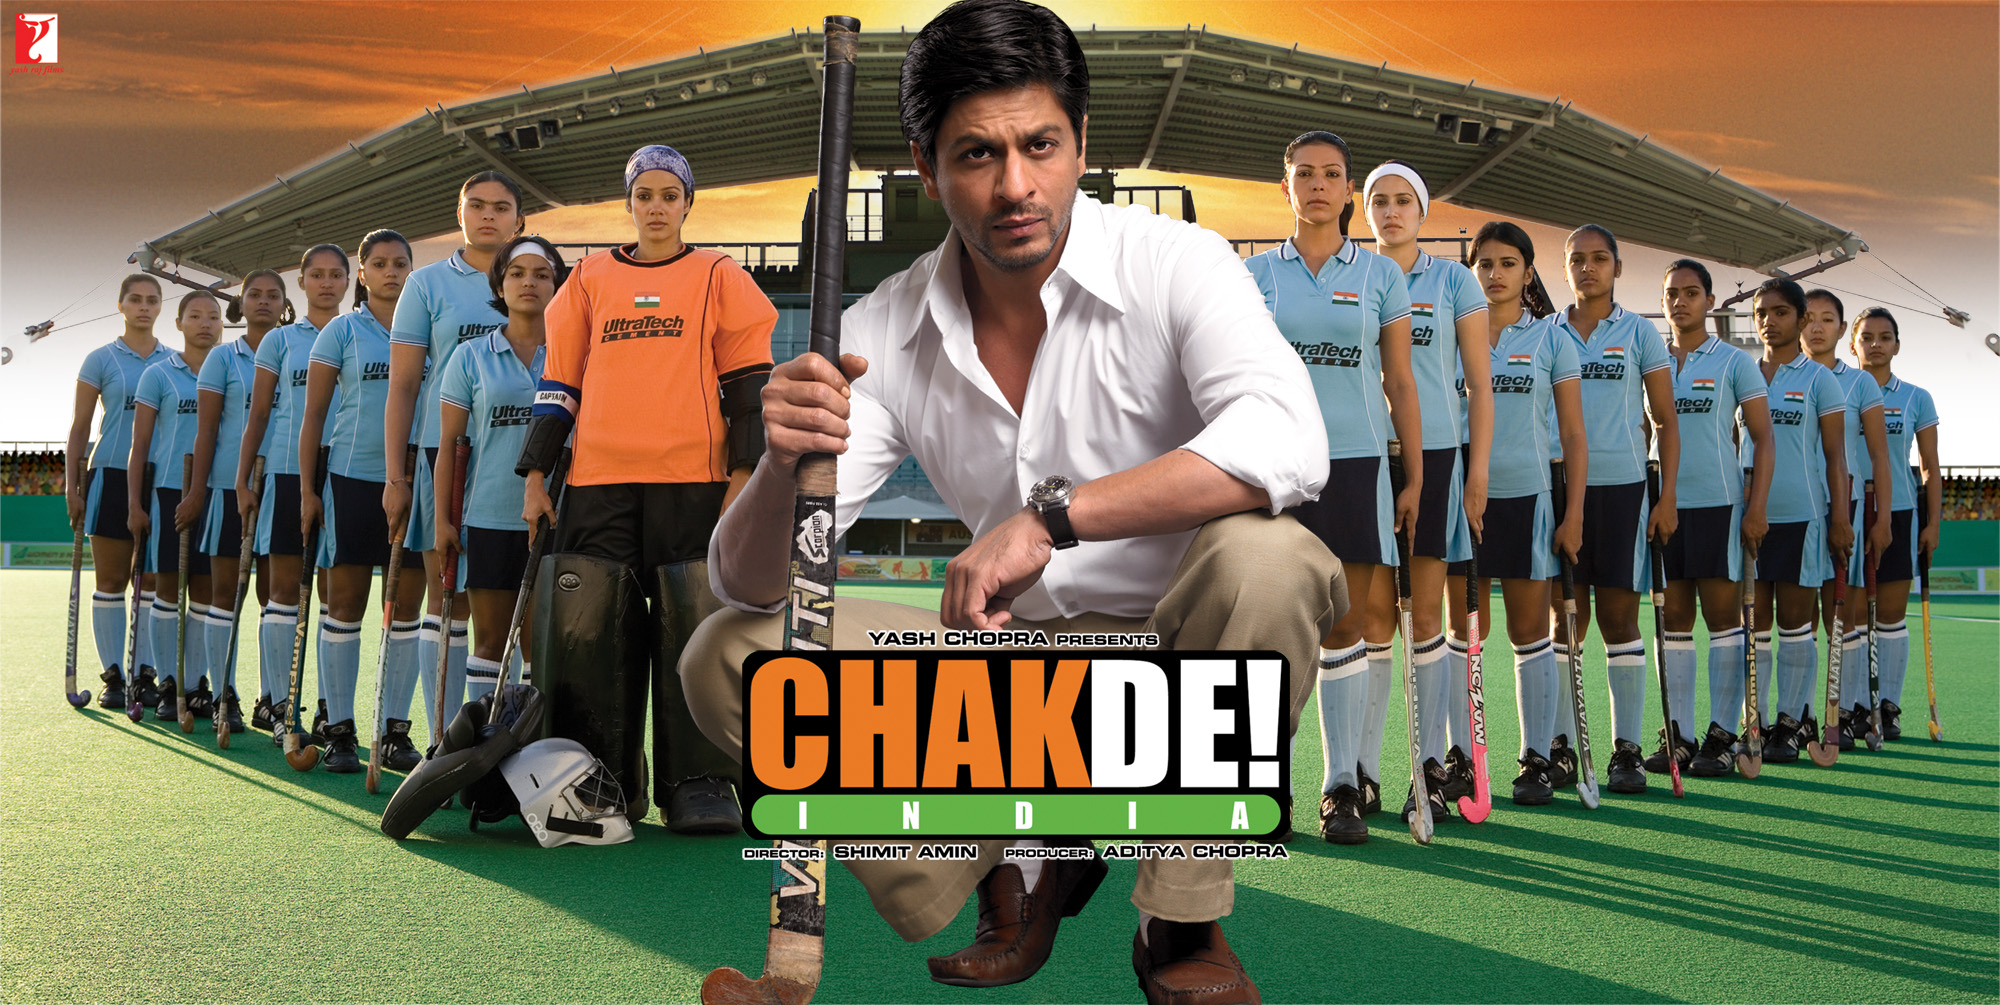 Chak de india full movie free download for mobile.